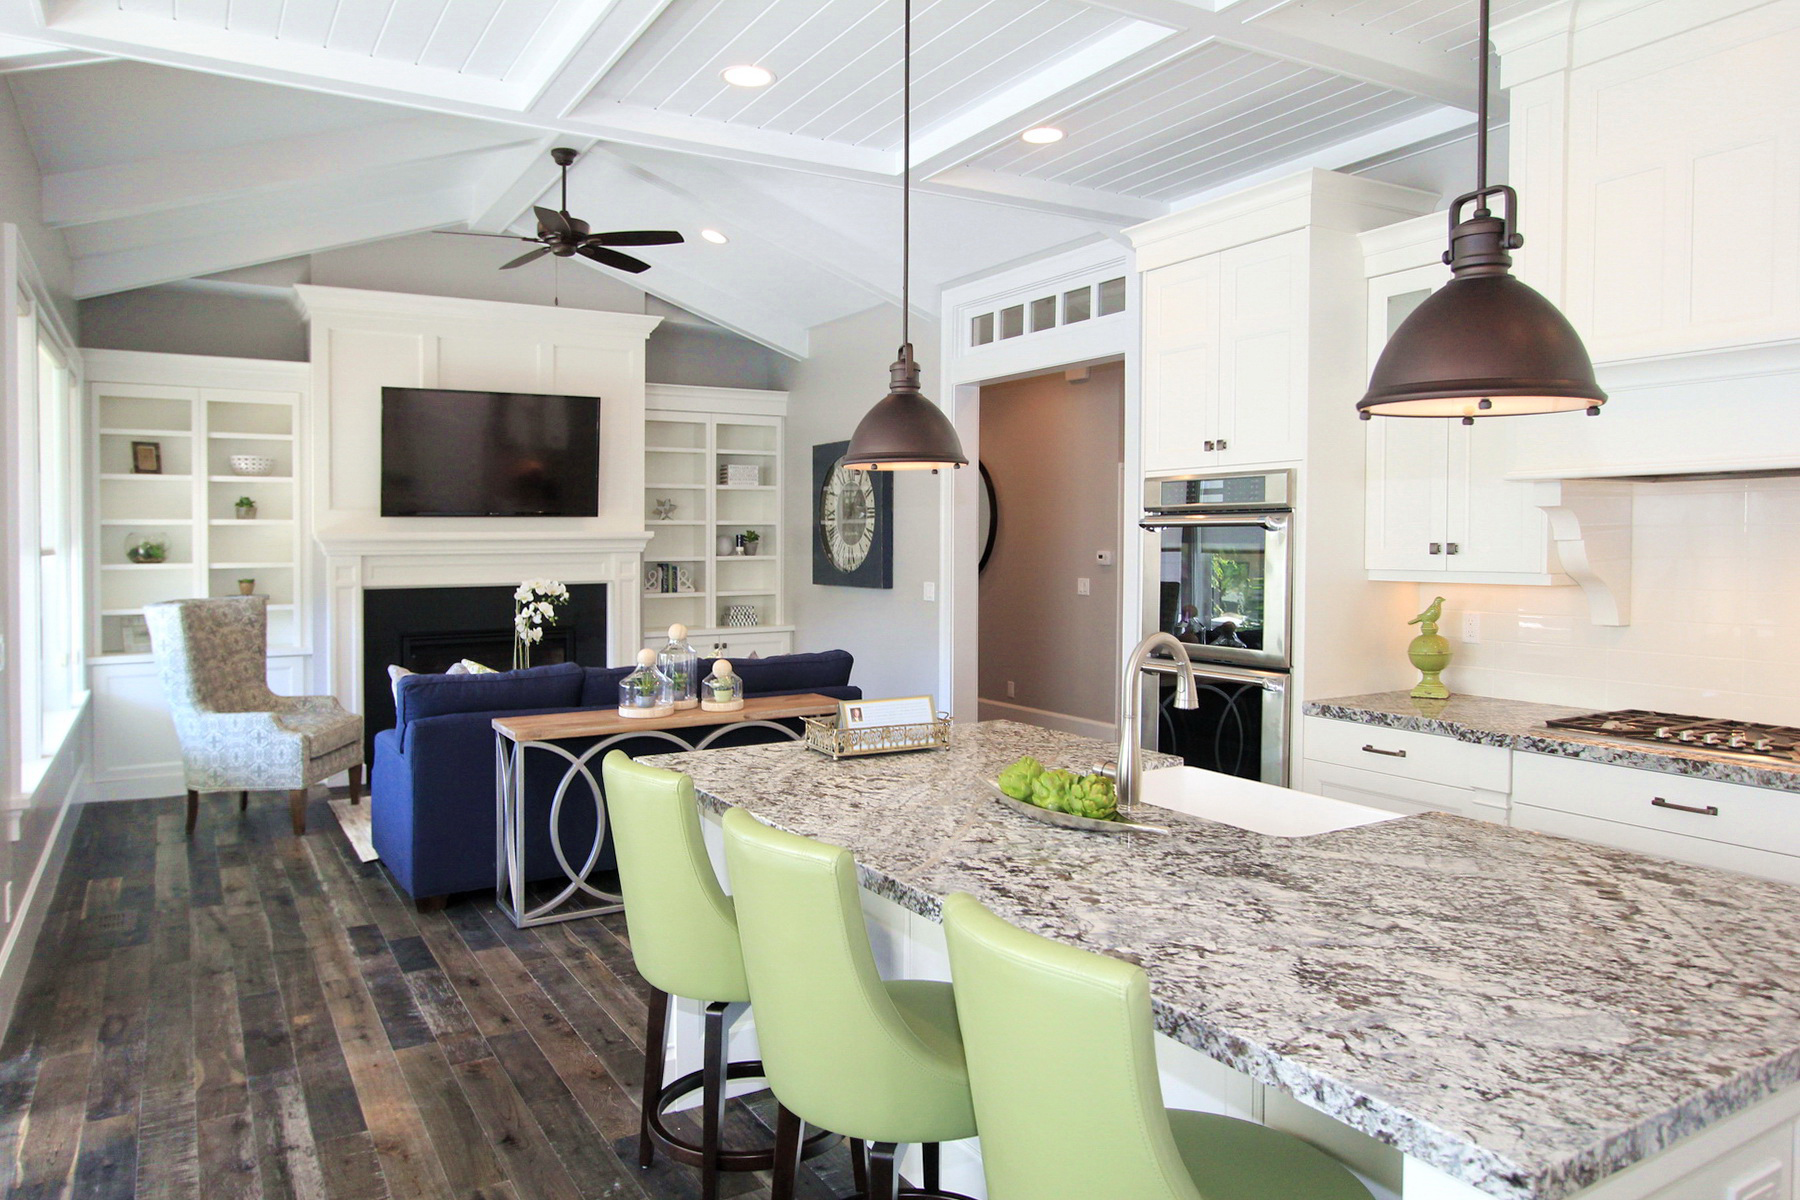 Foremost Kitchen Island Lighting & Lighting Options Over The Kitchen Island